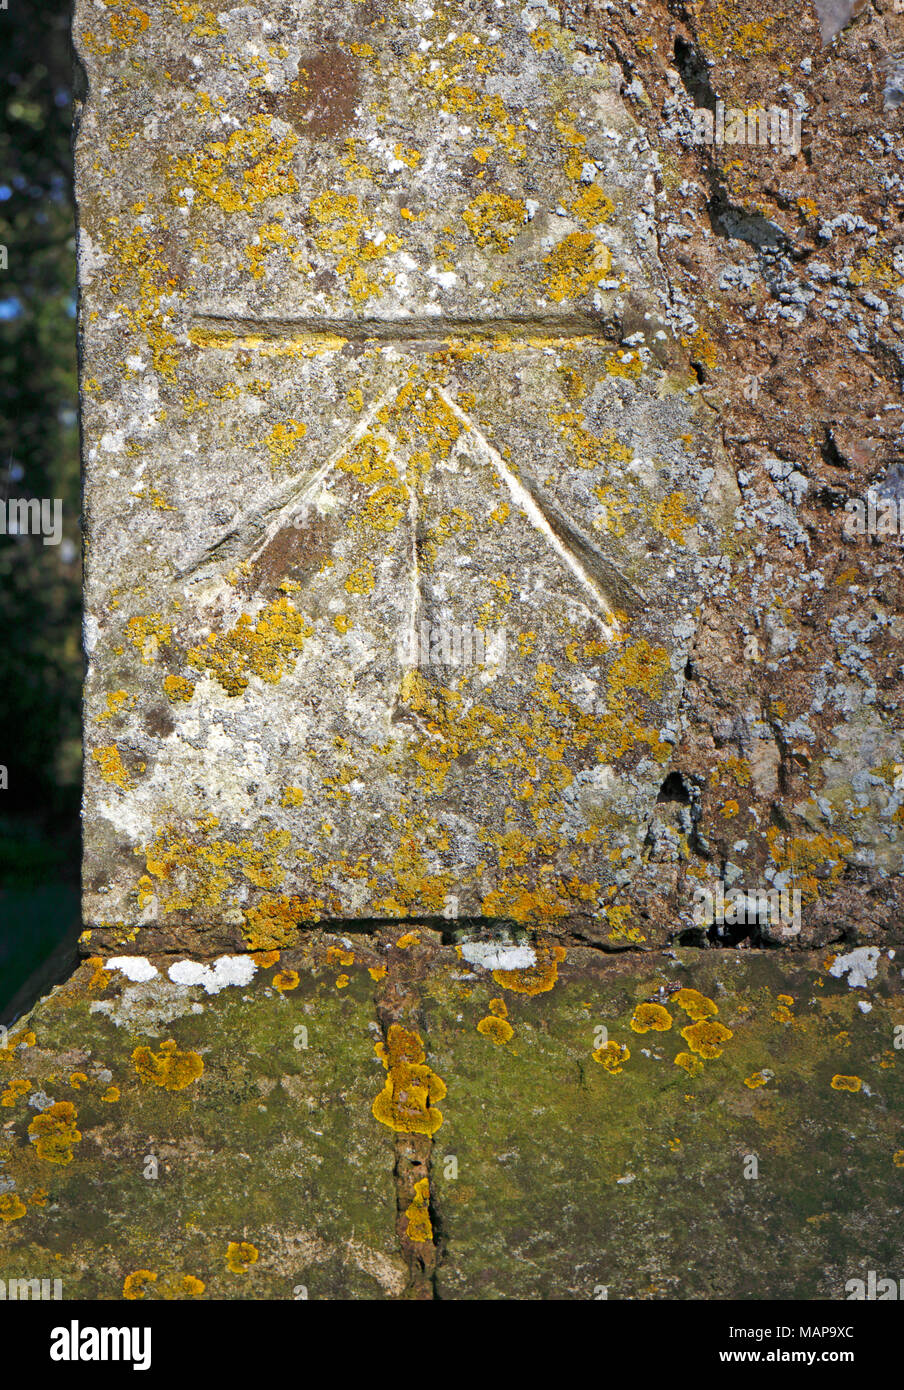 An example of an Ordnance Survey Bench Mark on the corner of the Church tower of St Michael at Irstead, Norfolk, England, United Kingdom, Europe. - Stock Image